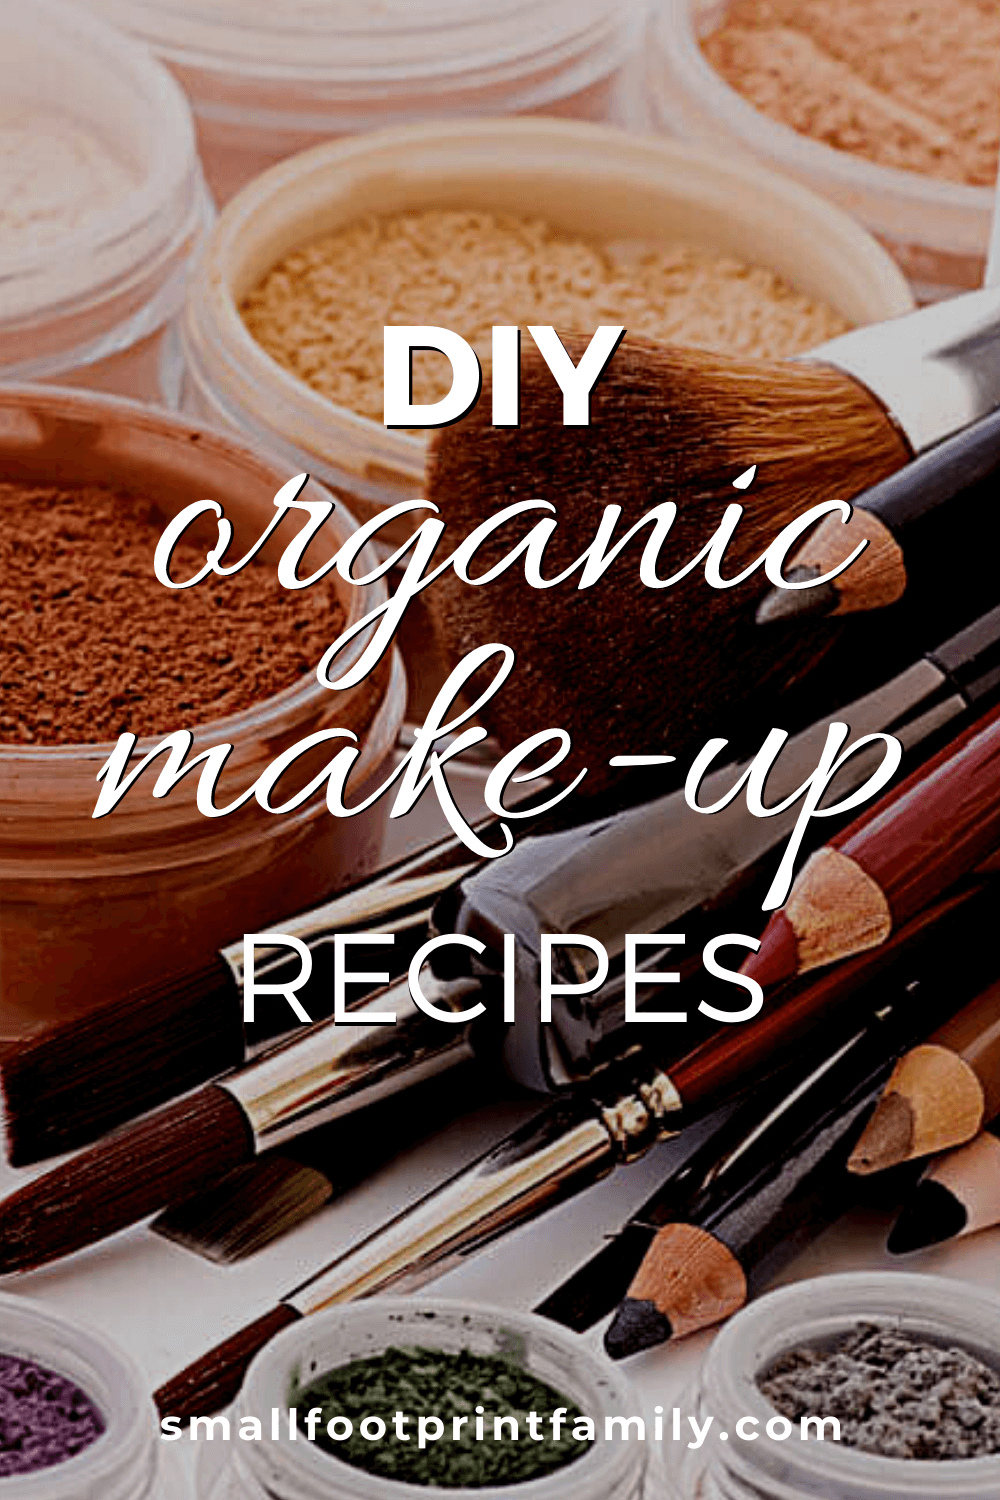 The majority of cosmetics contain chemicals and toxins that could potentially harm you, your skin, and age you ahead of your years. Using ingredients from your kitchen, you can make and replace everything in your makeup bag!#naturalhealth #naturalliving #diy #recipe #diybeauty #nontoxicbeauty #makeup